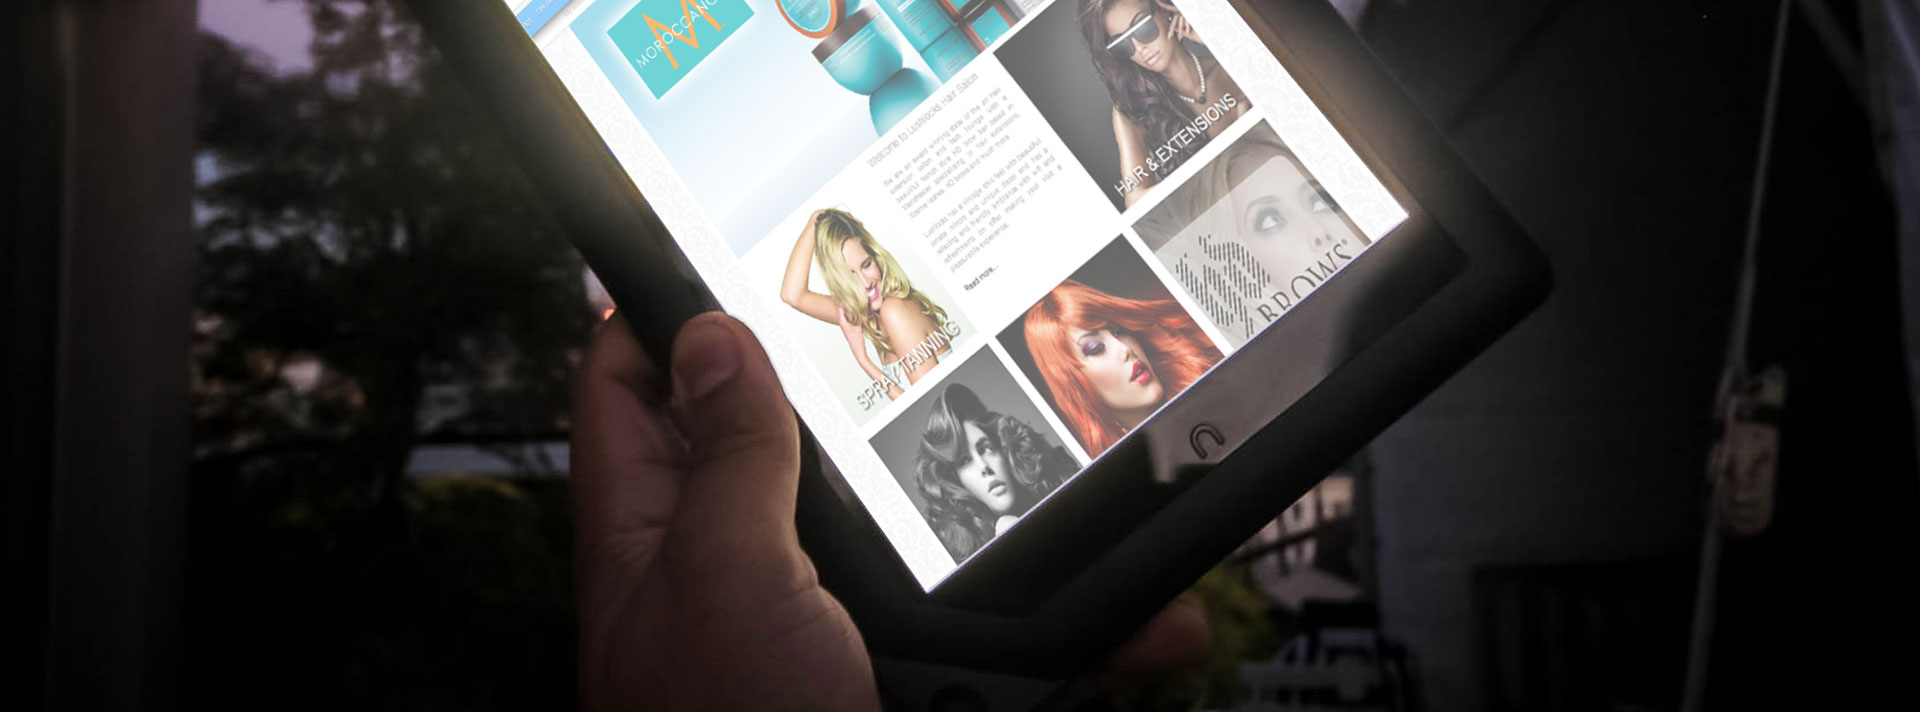 Creative Media Mavericks Responsive Web Design